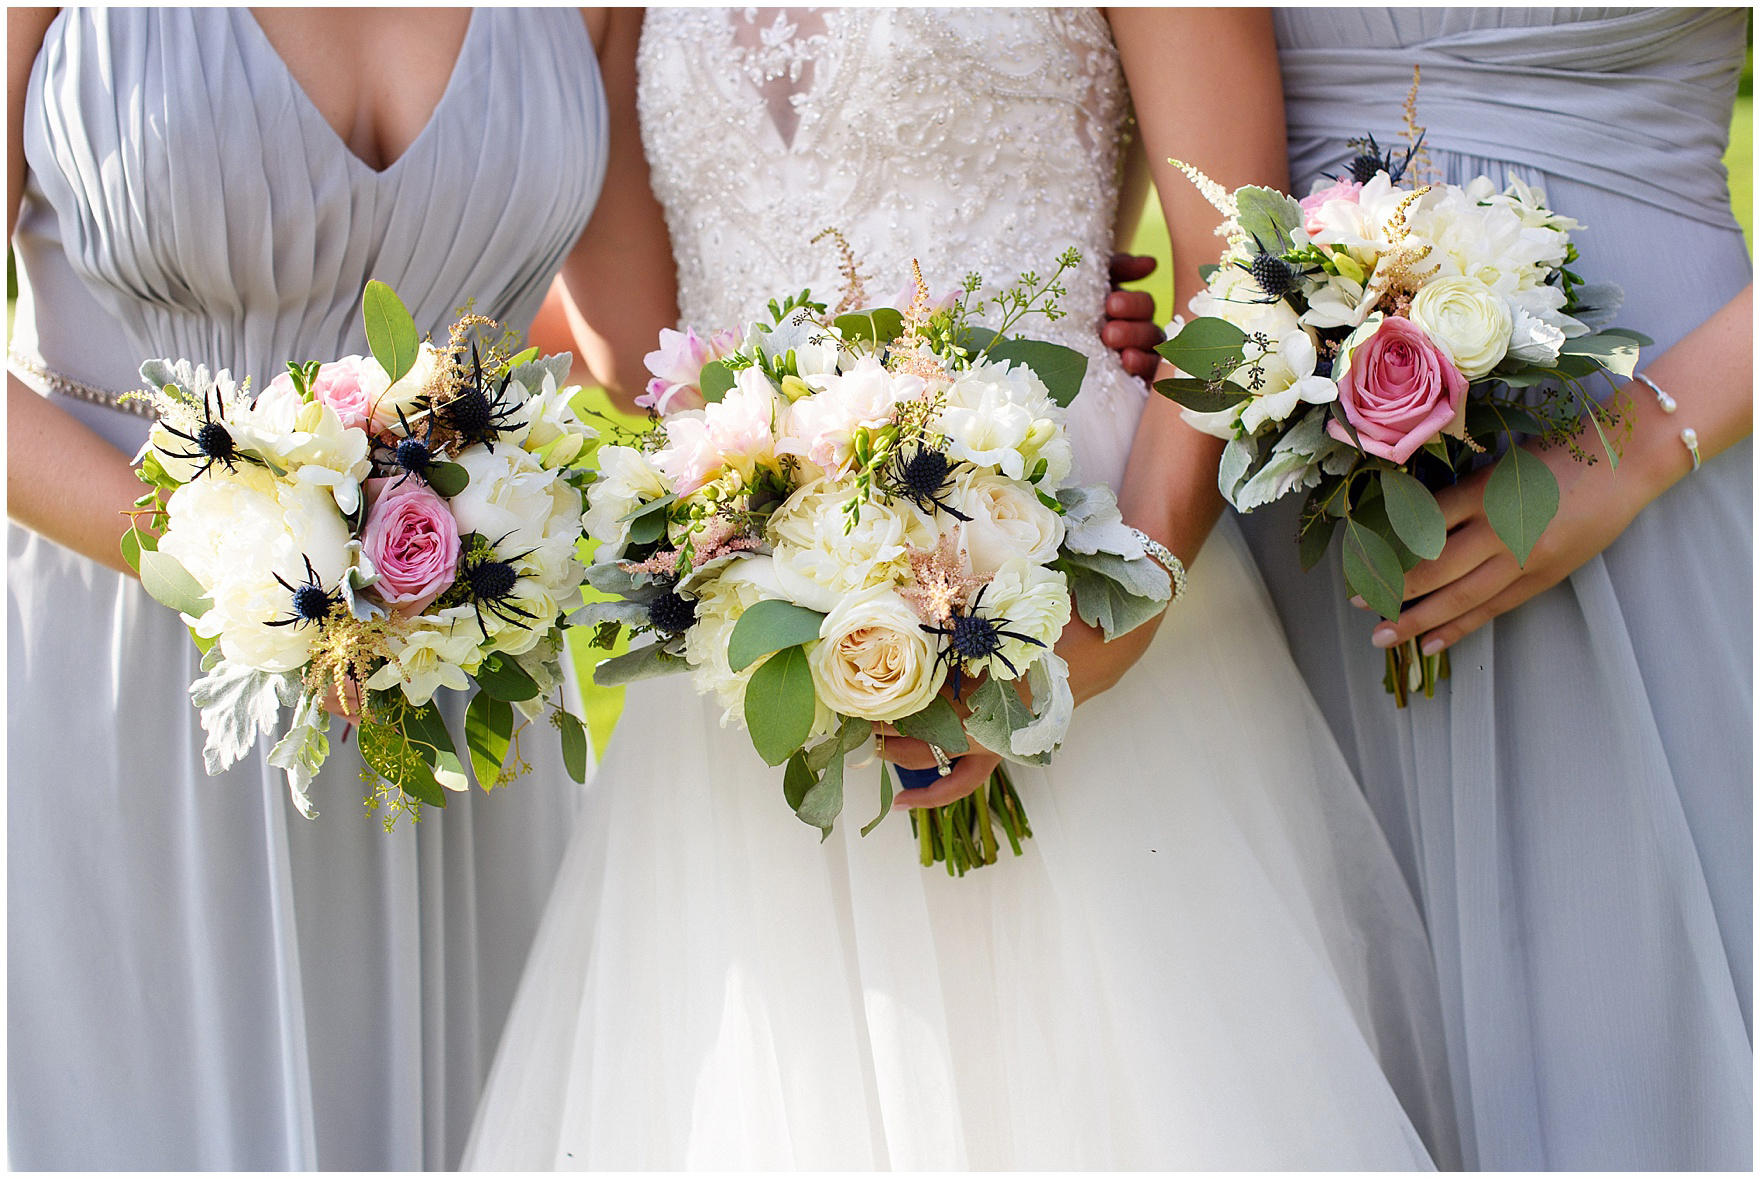 Details of a bridal bouquet and bridesmaids bouquets during a Biltmore Country Club Barrington wedding.